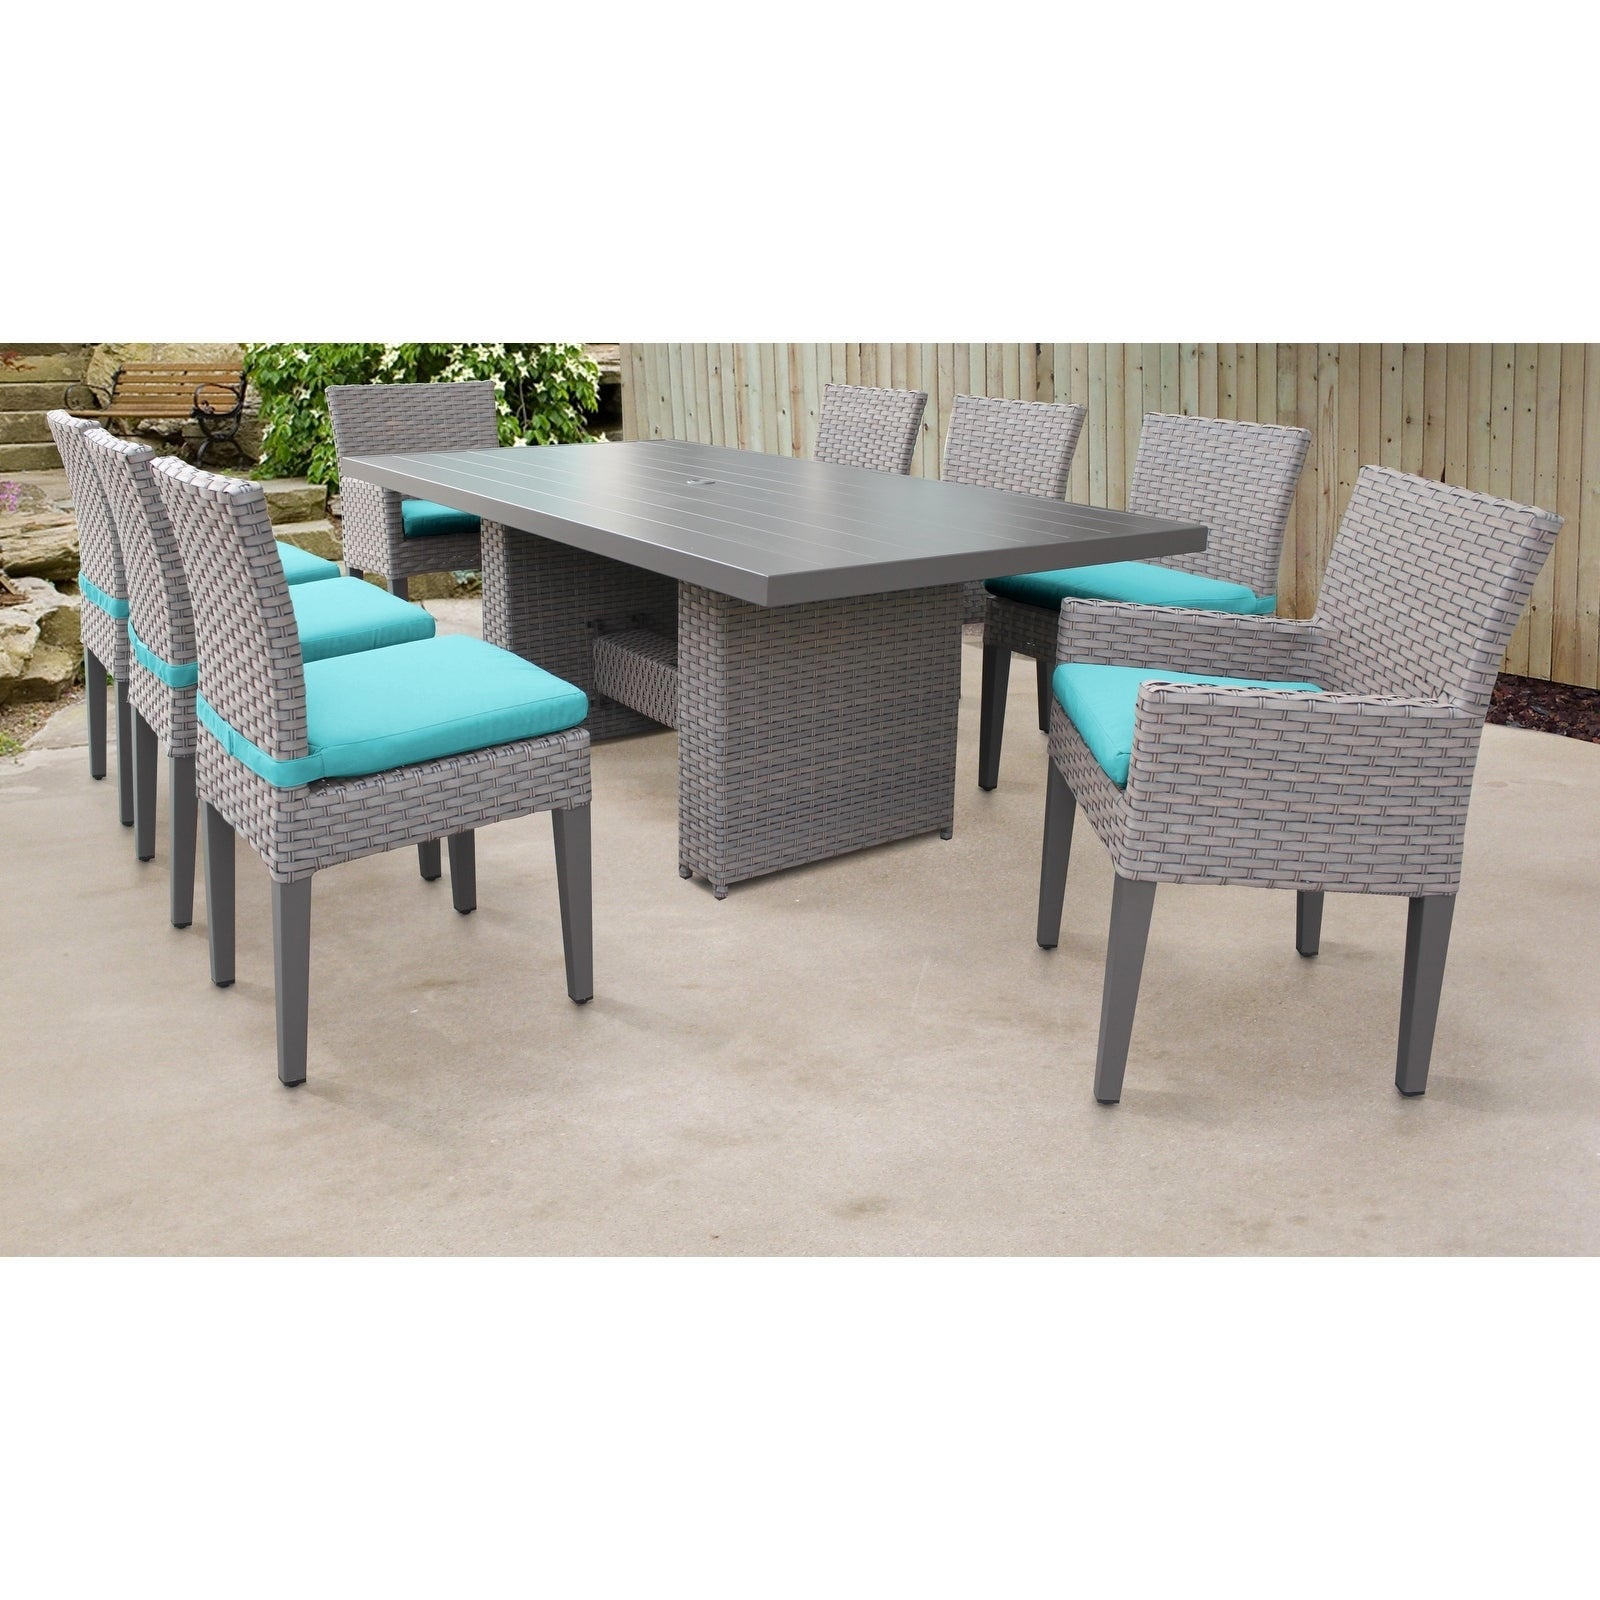 Florence Rectangular Outdoor Patio Dining Table With 6 Armless Chairs And 2 W Arms